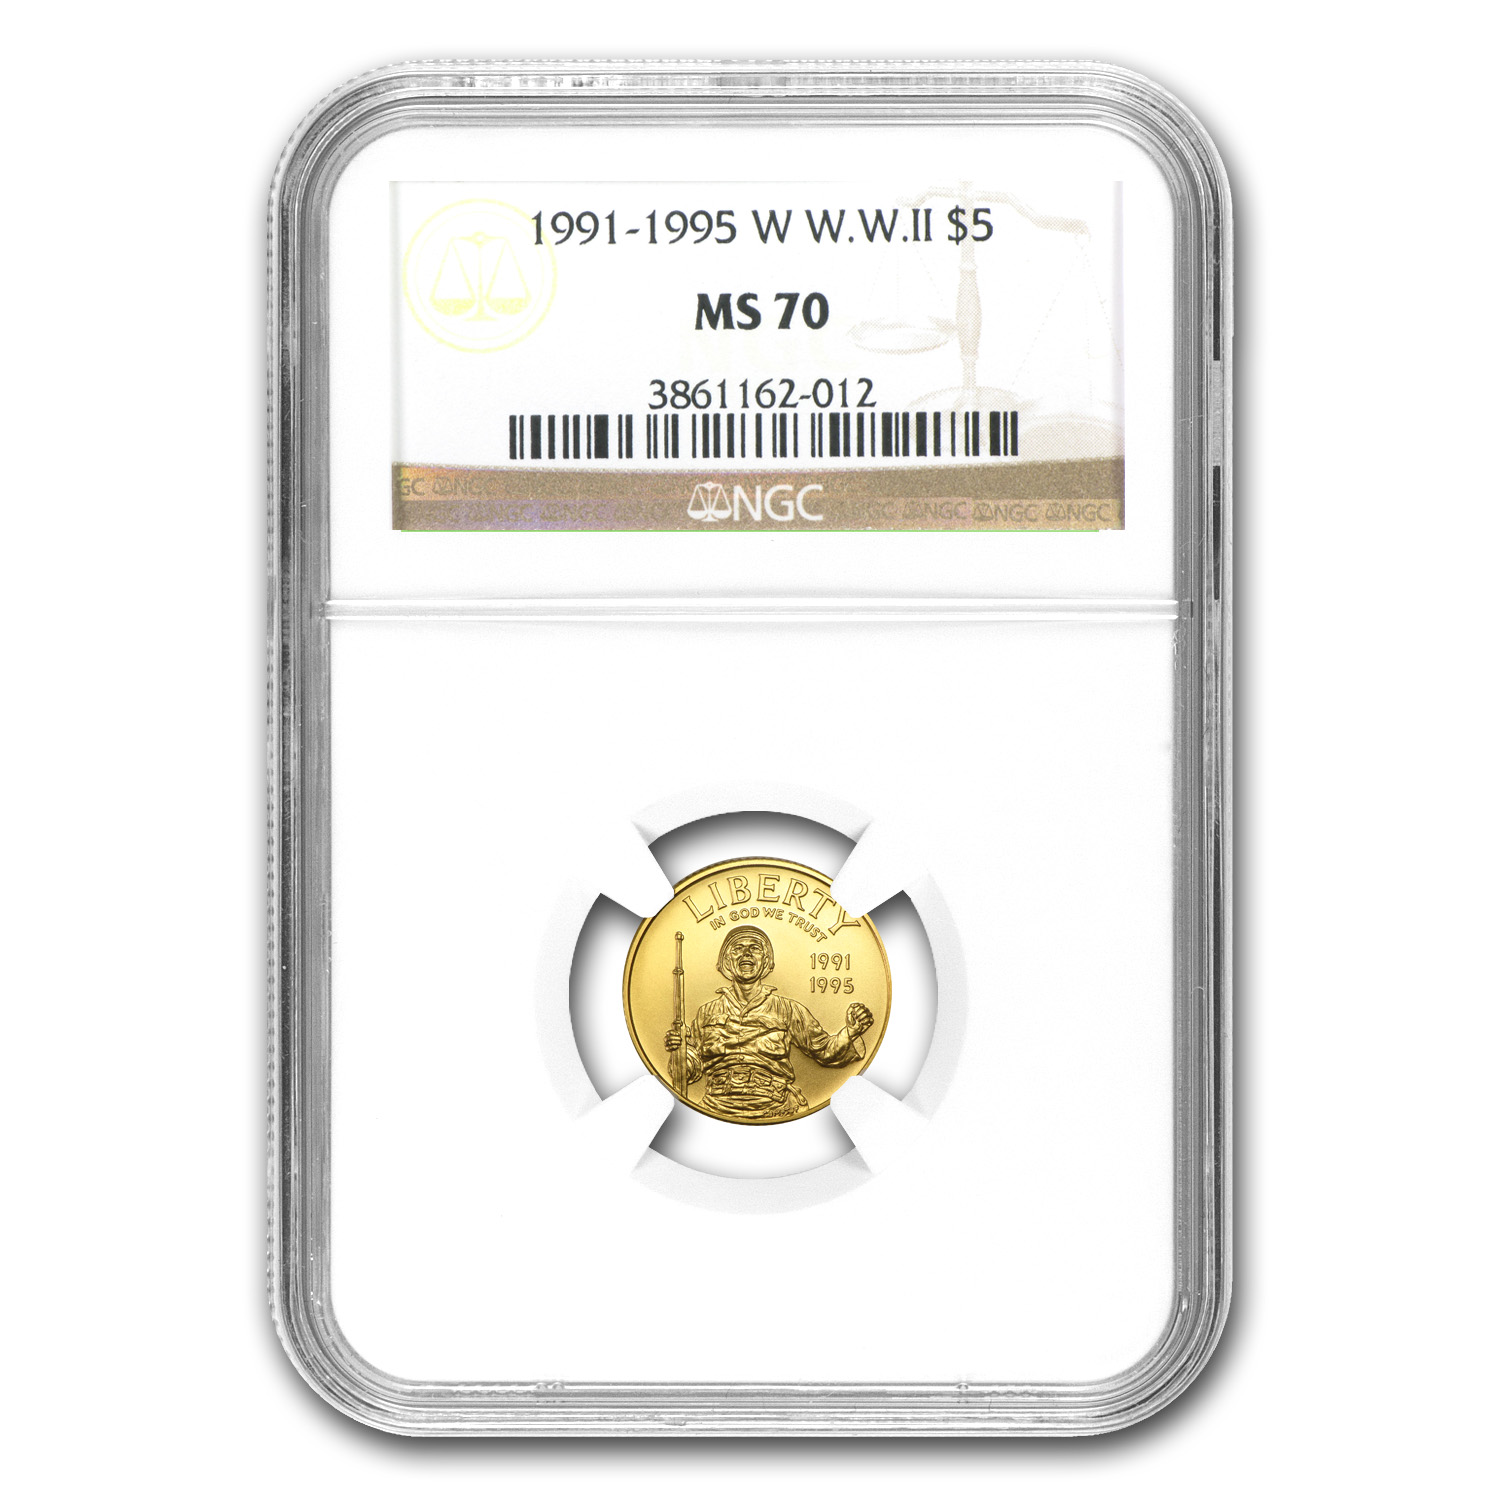 1993-W World War II - $5 Gold Commemorative - MS-70 NGC